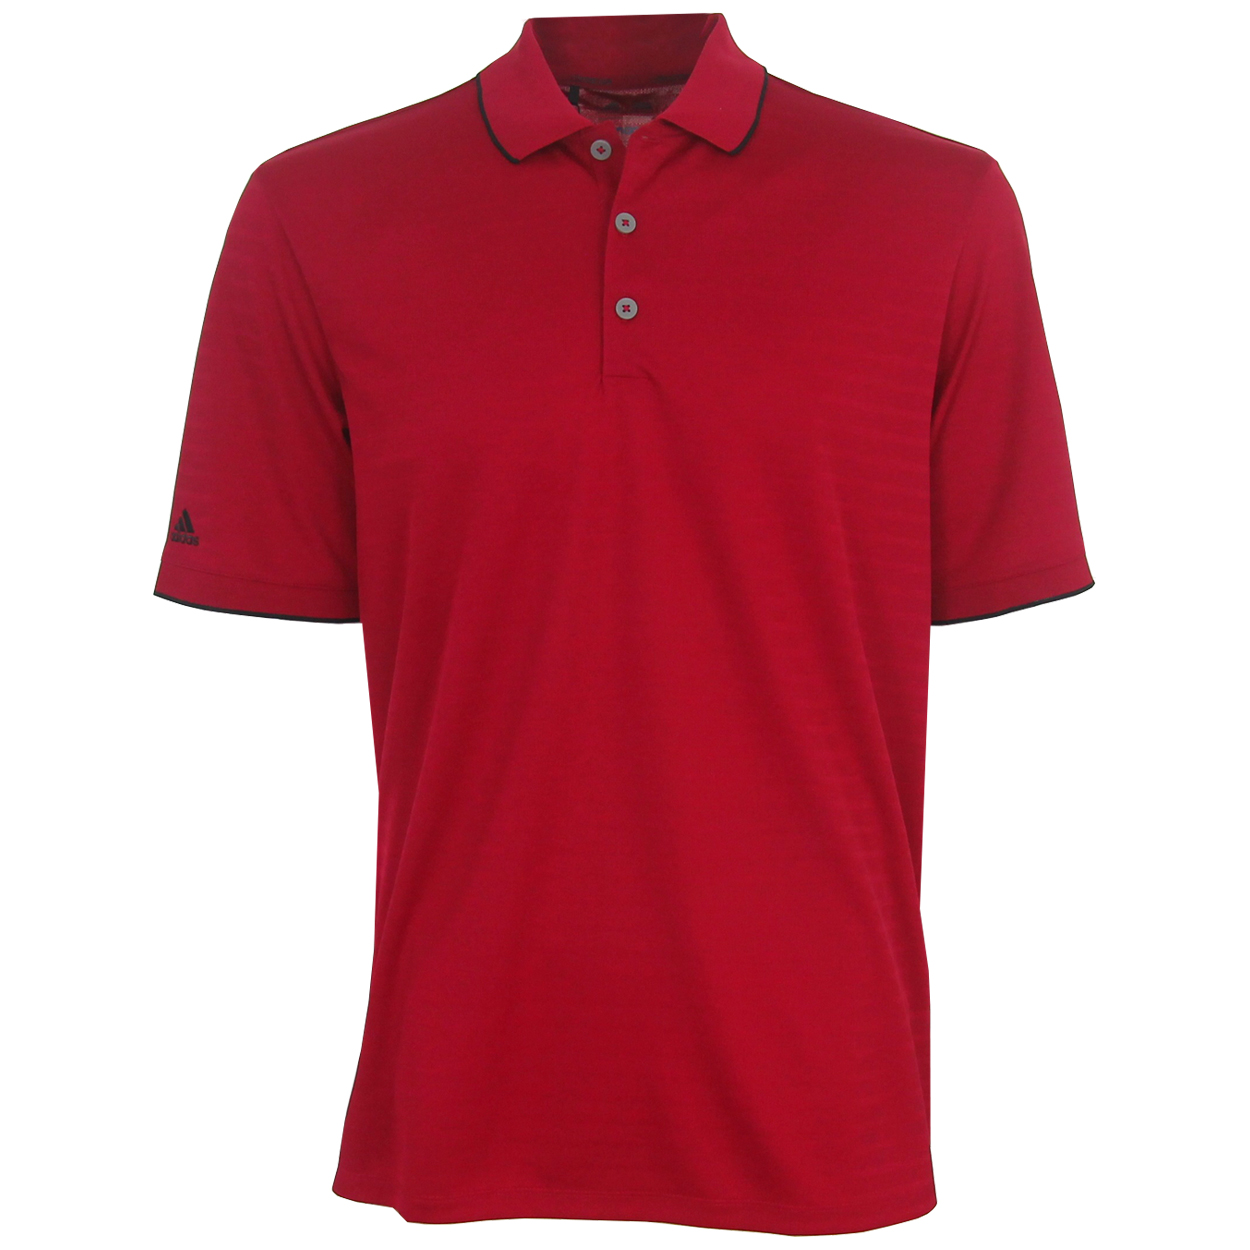 Adidas golf men 39 s climacool tipped club polo shirt brand new for All polo shirt brands